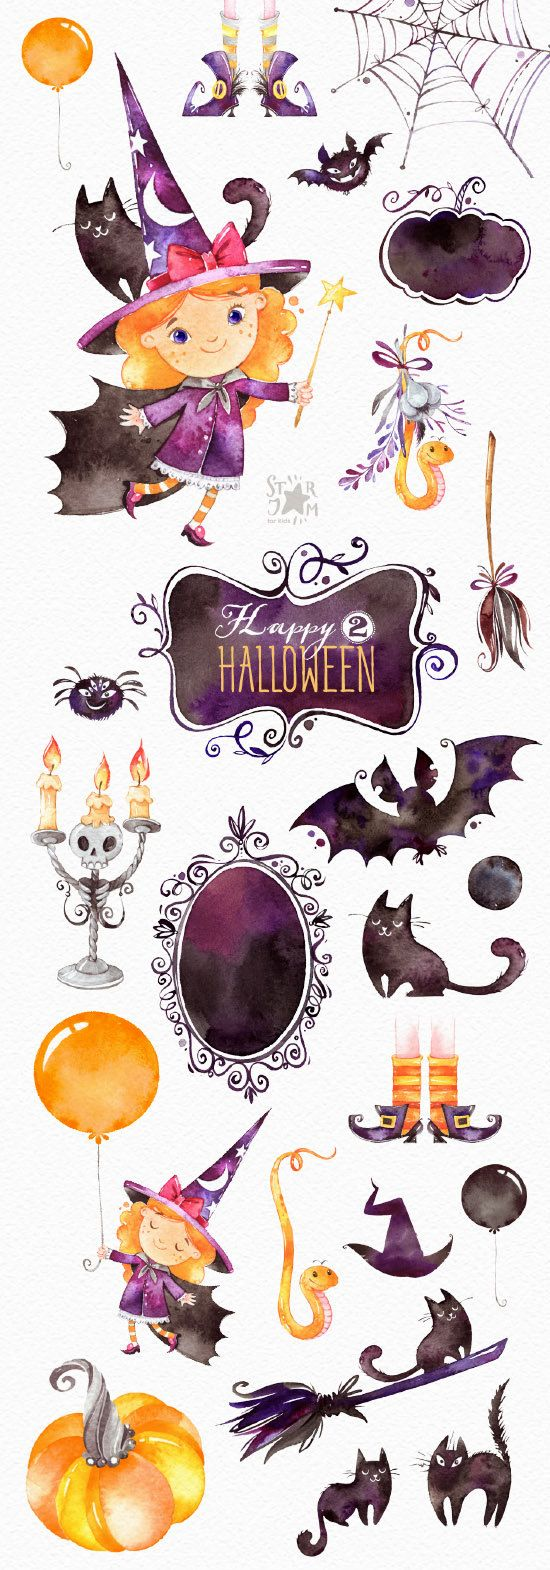 This Haloween clipart set is just what you needed for the perfect for Haloween projects, paper products, party decorations, printable, greetings cards, posters, stationery, scrapbooking, stickers, t-shirts, baby clothes, web designs and much more. :::::: DETAILS :::::: This collection includes: - 26 Elements in separate PNG files, transparent background, different size approx.: 12-4in (3600-1200px) 300 dpi RGB All Halloween Sets https://www.etsy.com/shop/StarJamforKids?ref=hdr_shop_menu&s...